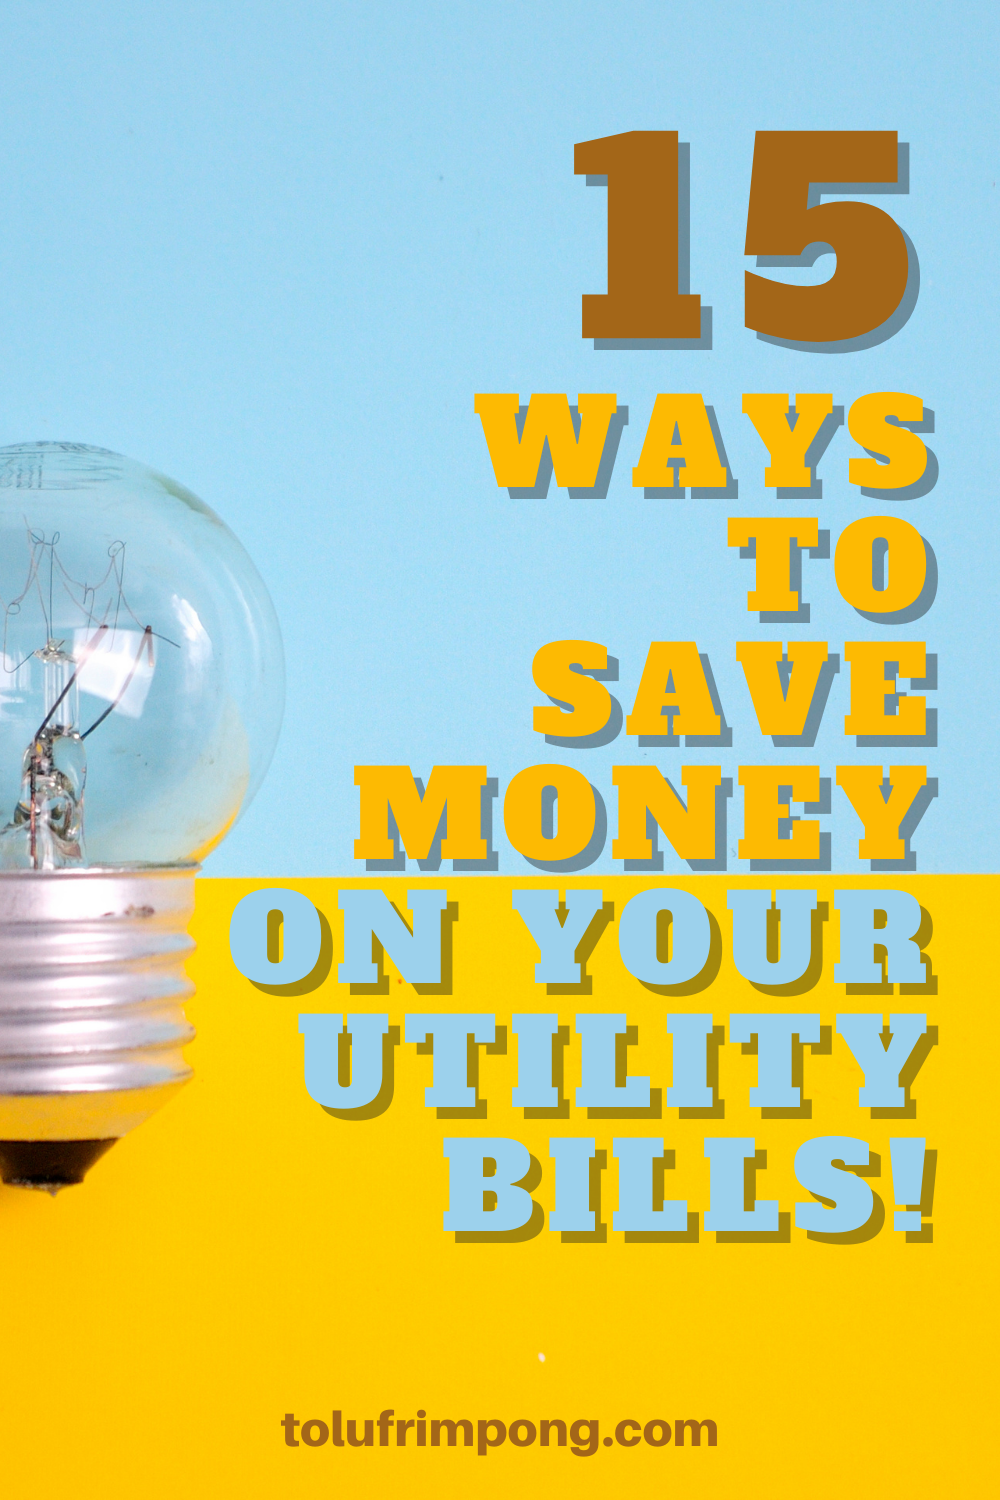 15 ways to save money on your utility bills